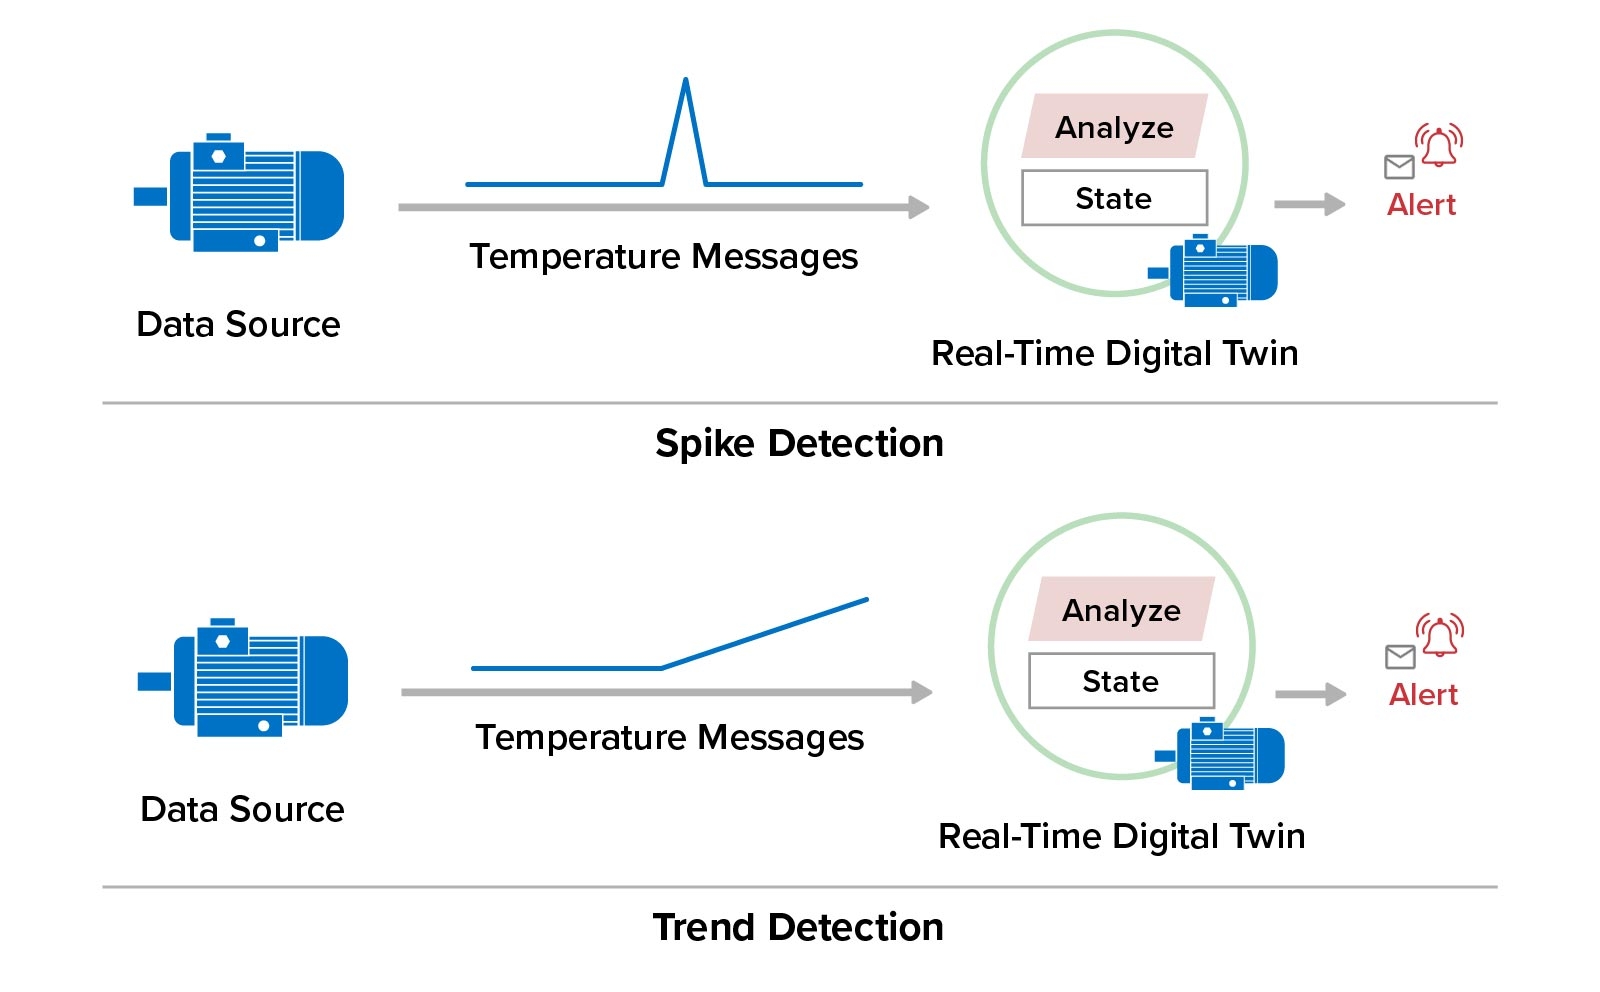 Real-time digital twins can perform spike and trend detection for telemetry parameters.